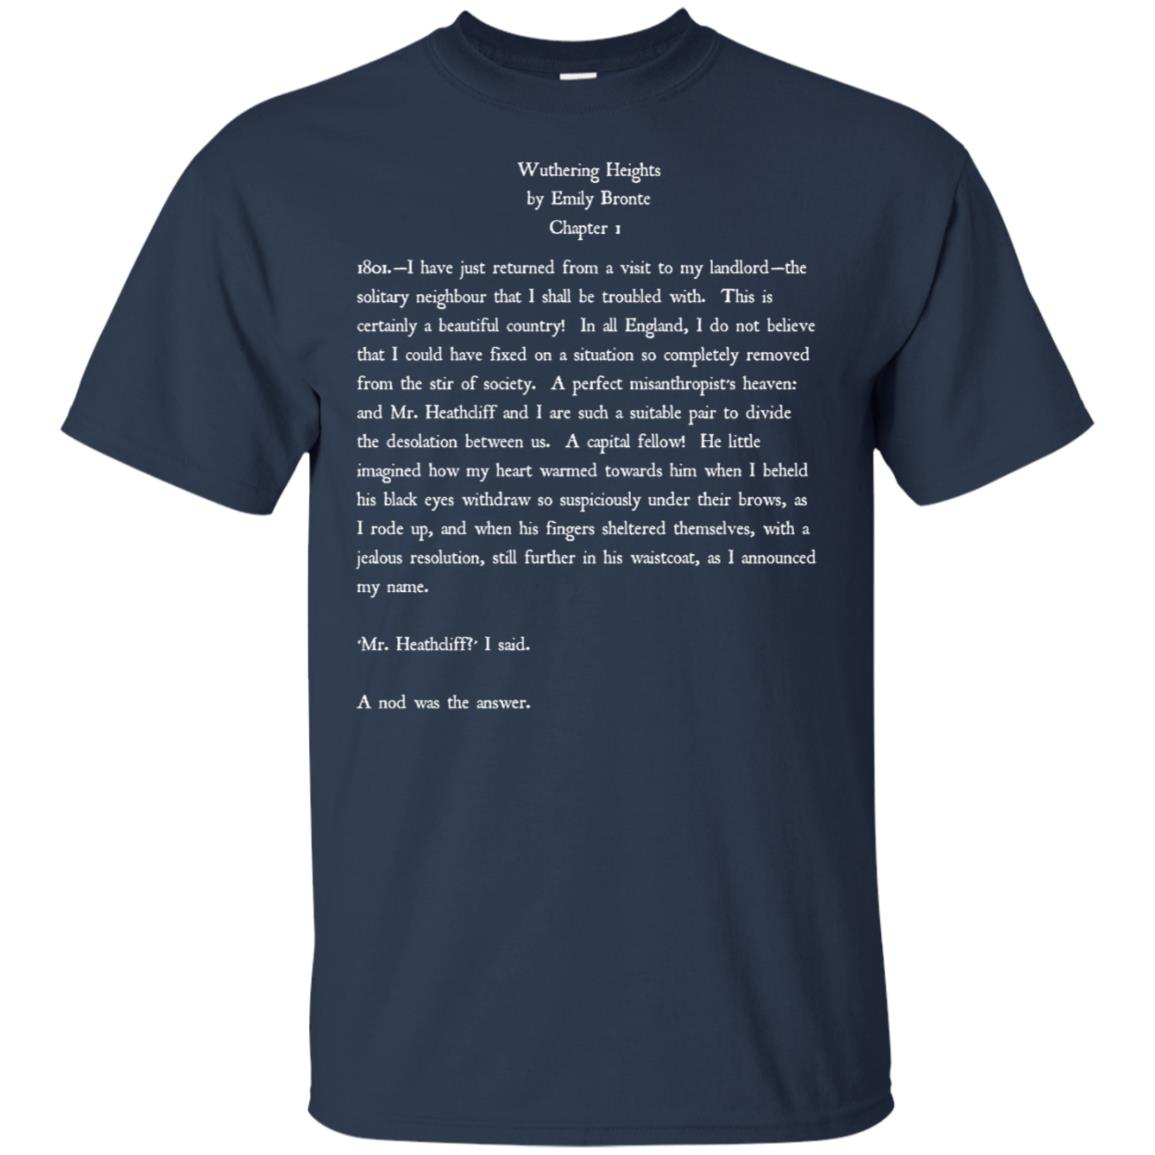 Emily Bronte Wuthering Heights Vintage Text Gift Unisex Short Sleeve